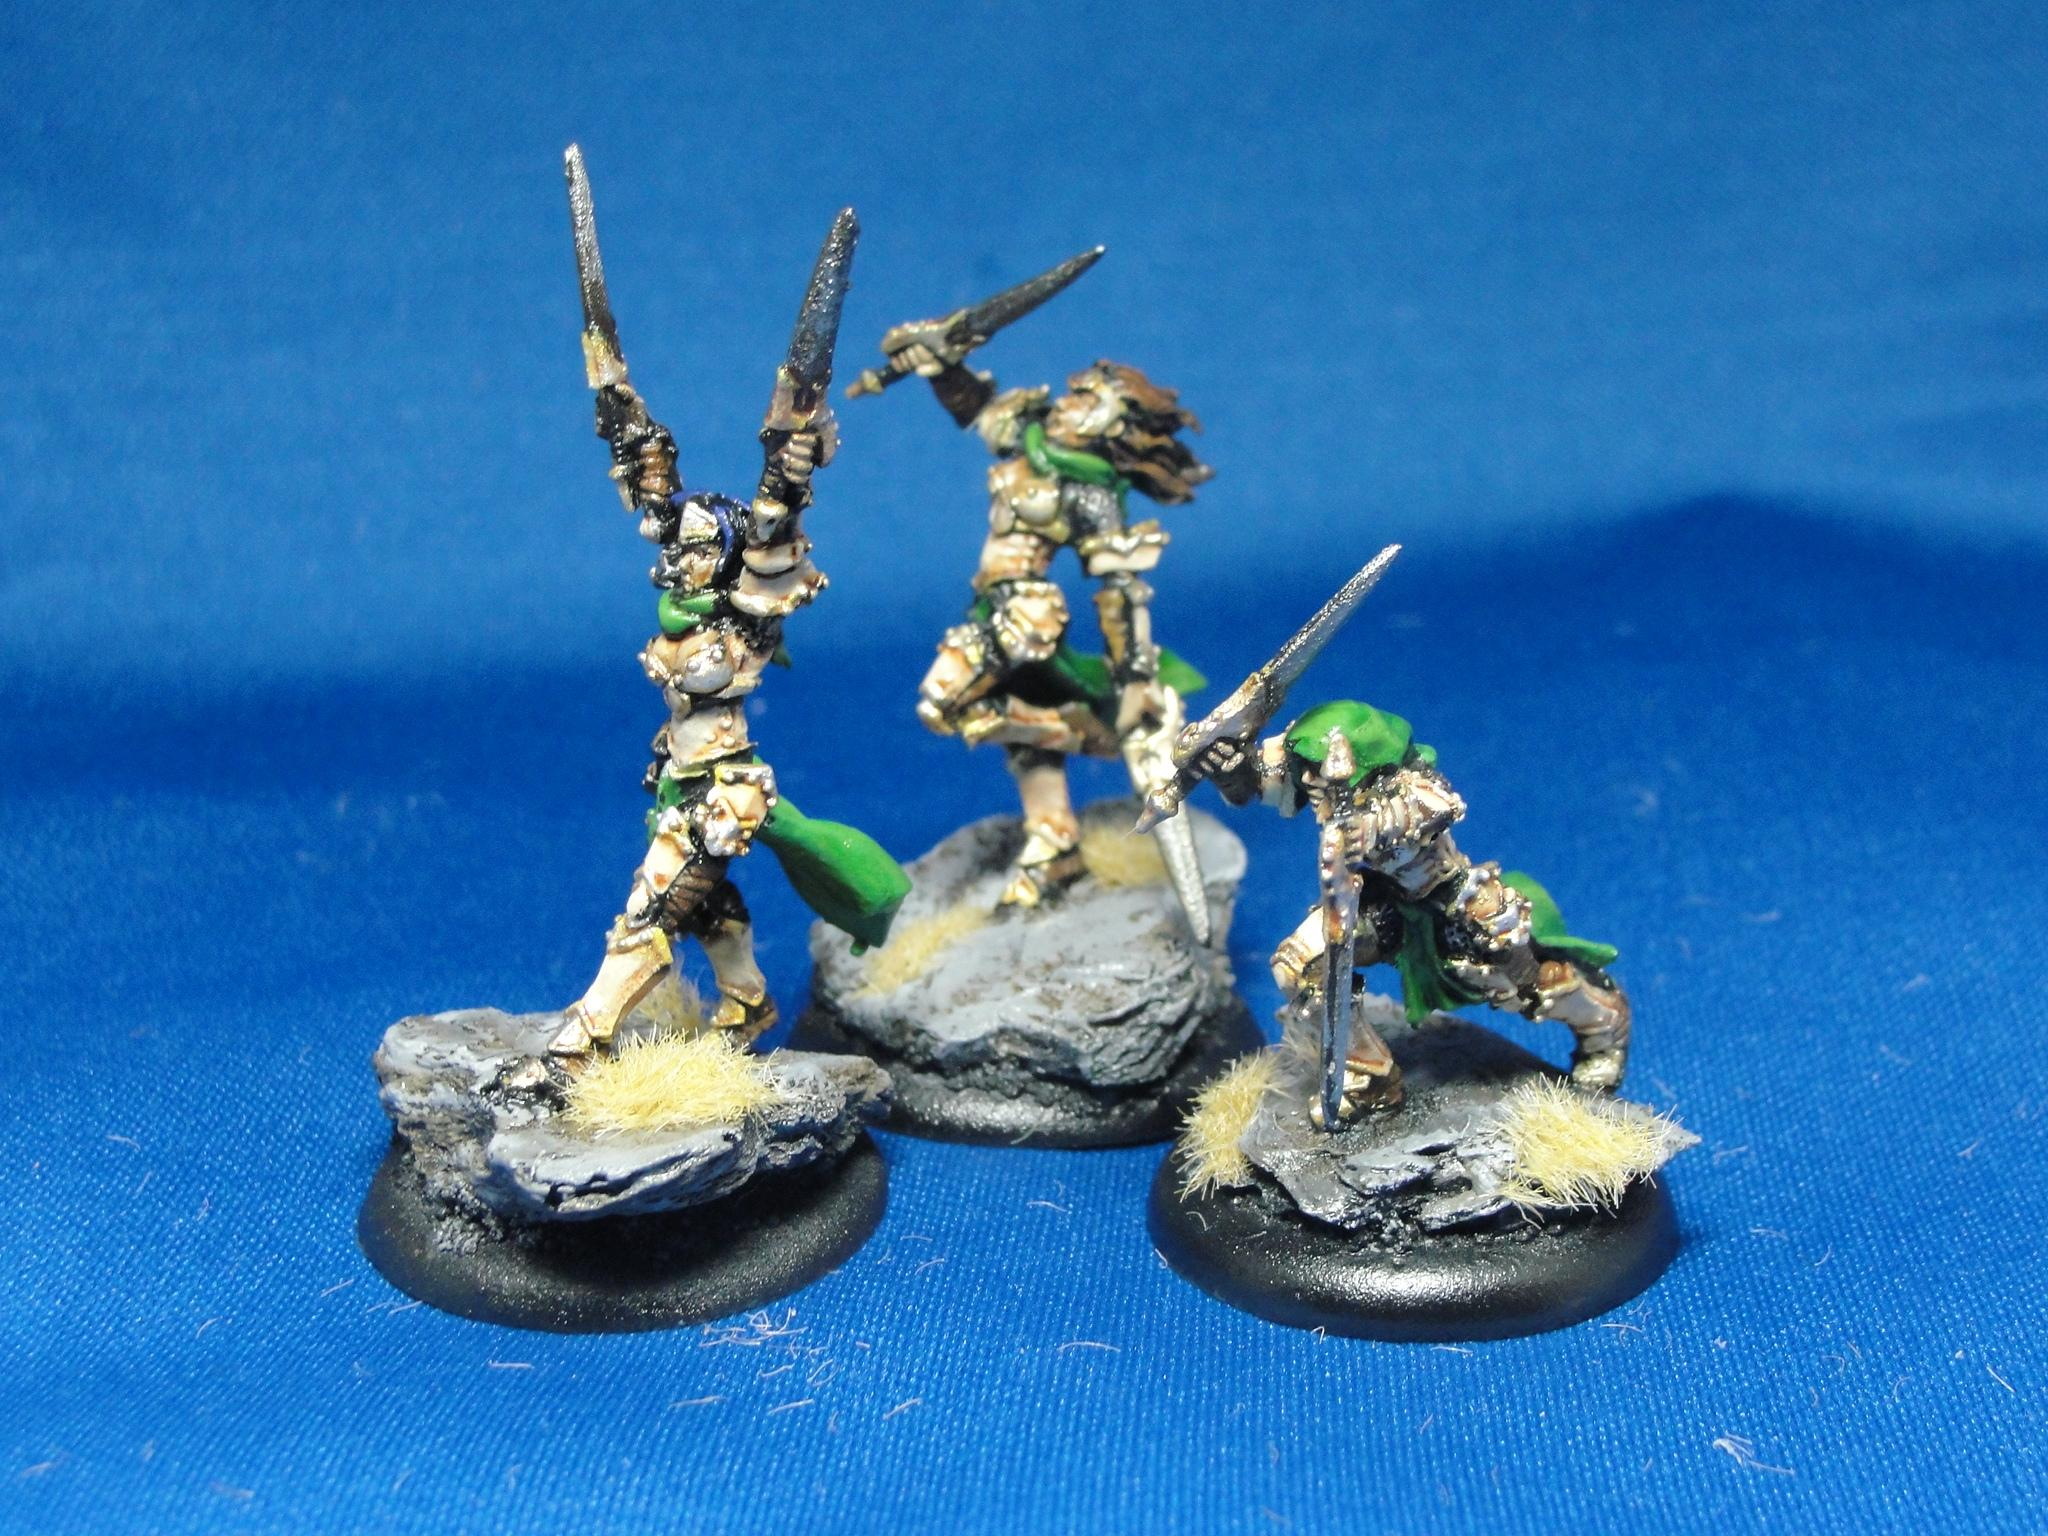 Warmachine, Protectorate of Menoth, Daughters of the Flame